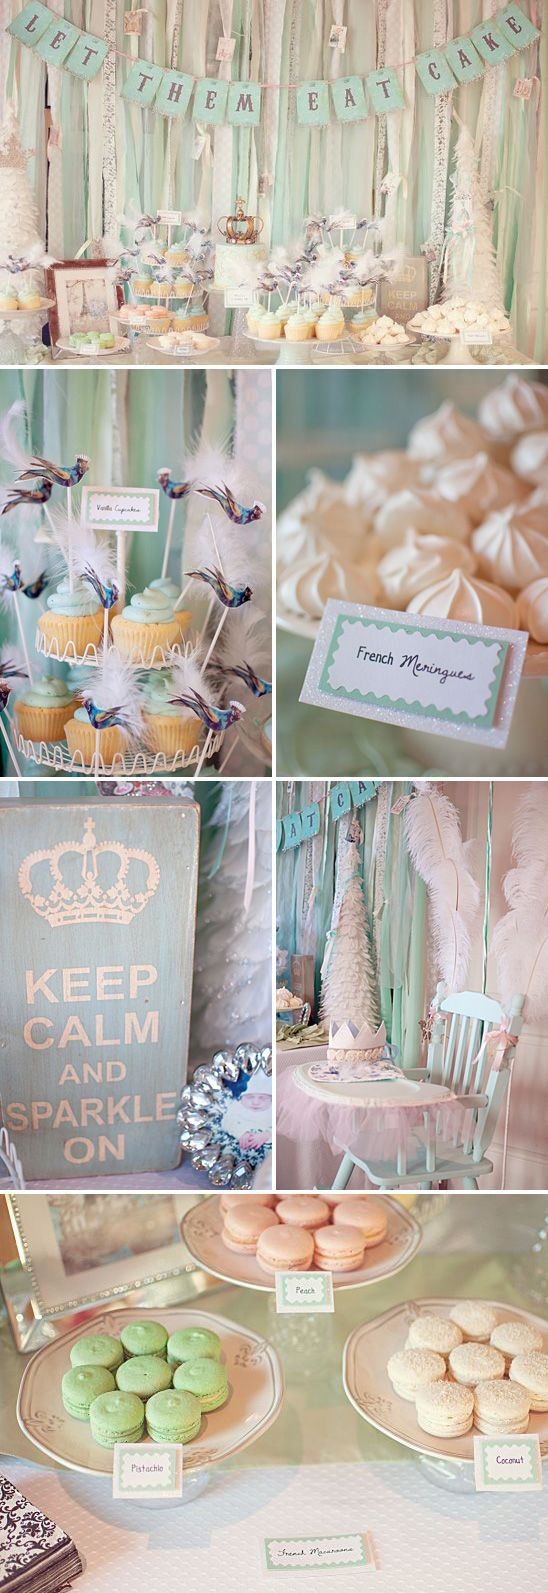 cute idea if I ever have a baby girl :) Winter in Paris themed birthday party. @Bria Sinnott - next year's Christmas party theme!